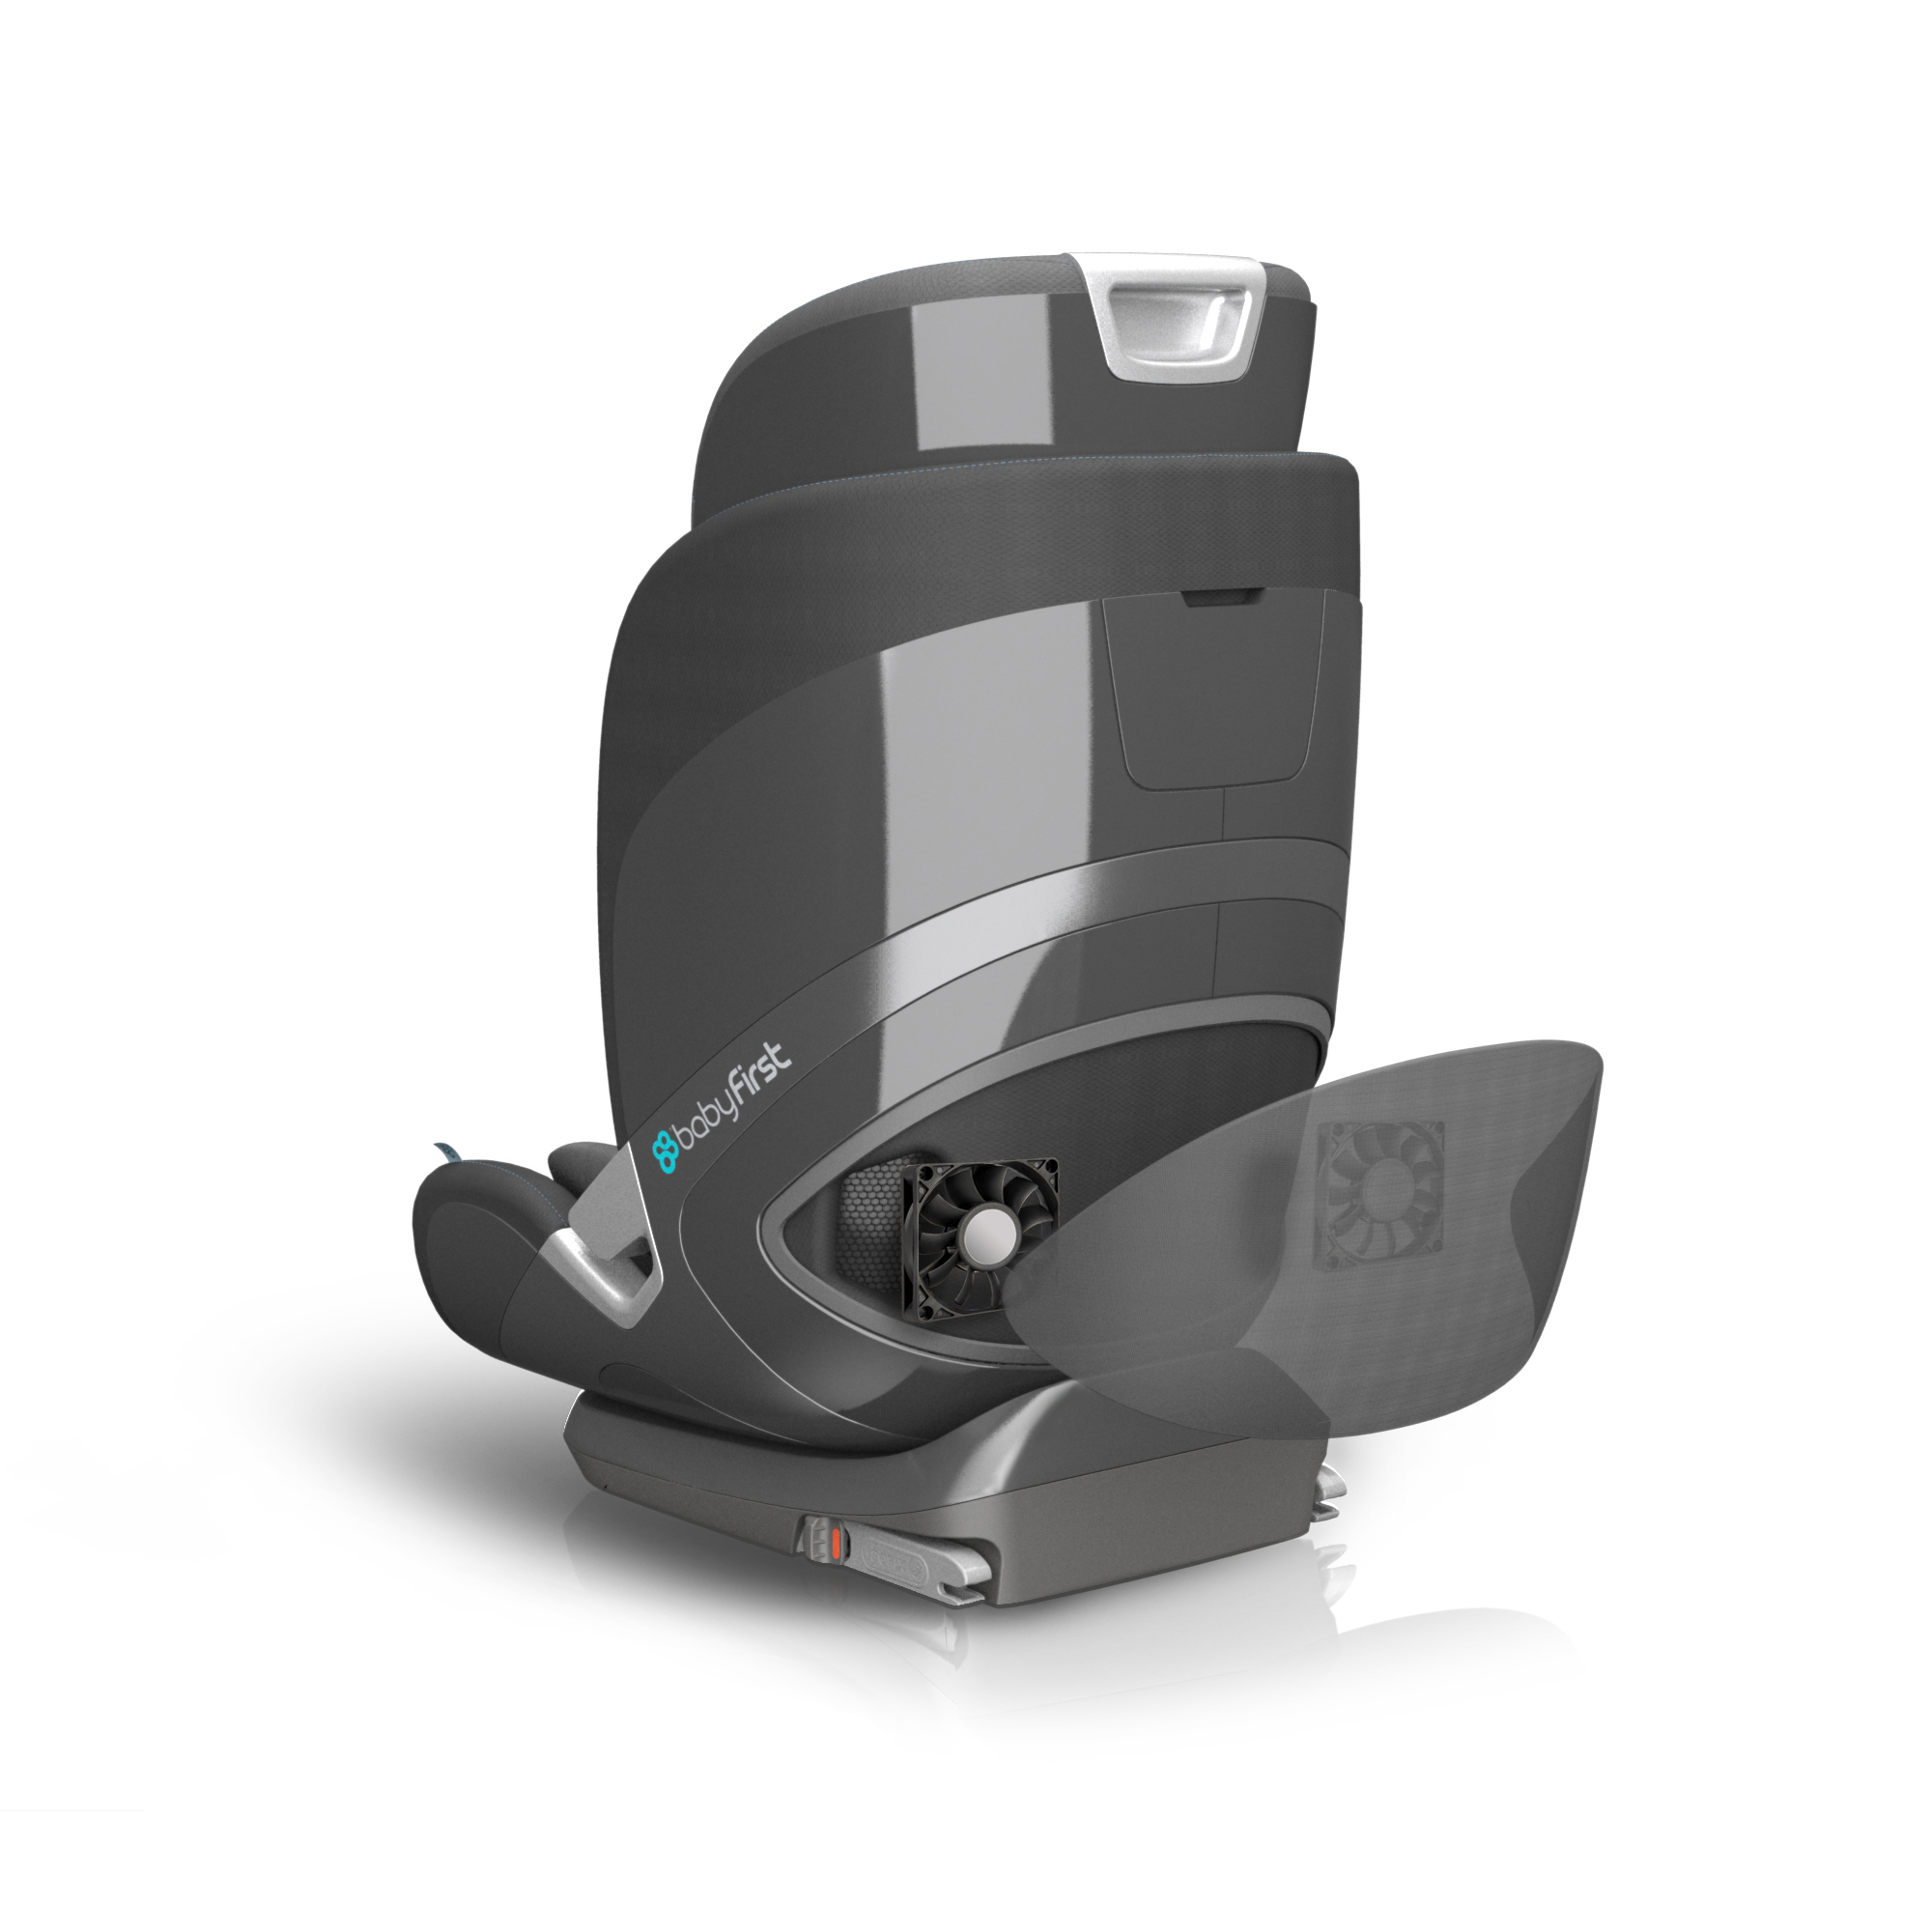 Smart design: baby car seat with sensors and comfortable shapes